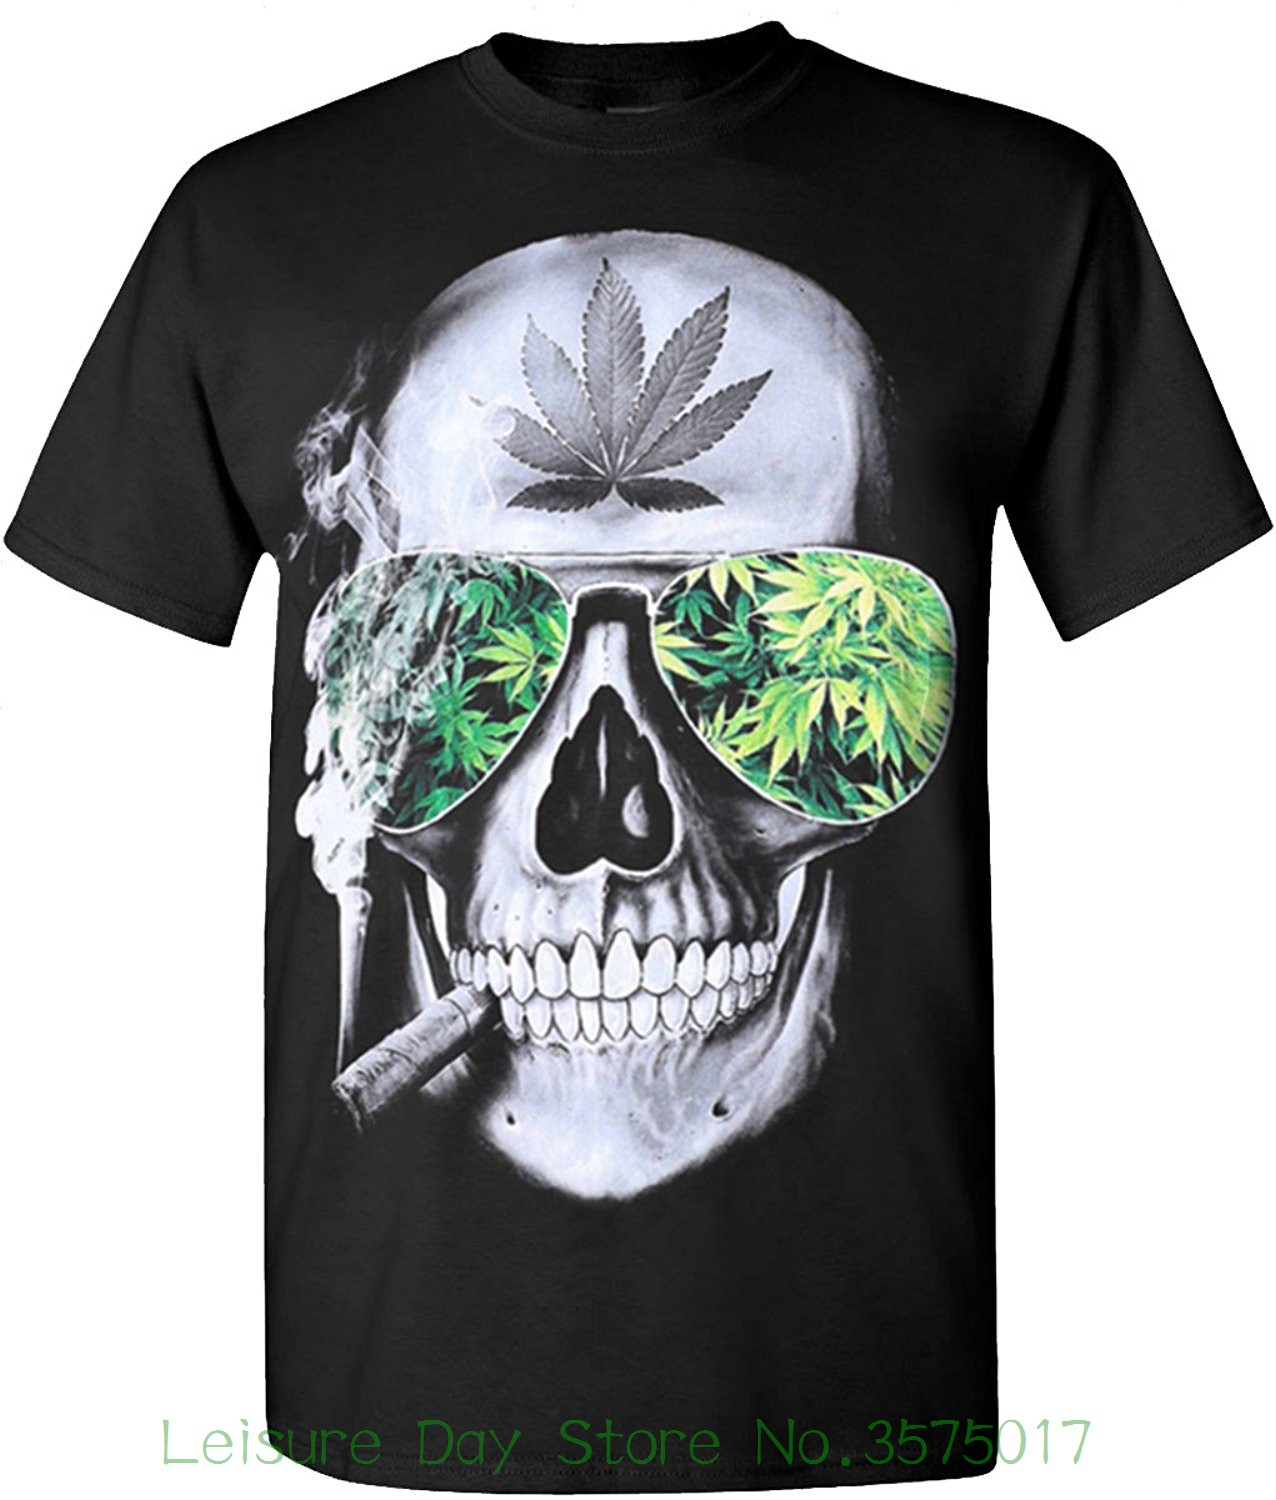 Short Sleeves Cotton Fashion T Shirt Free Shipping Skull Weed Blaze 420 Hip Hop Legend Rappers T Shirts ...